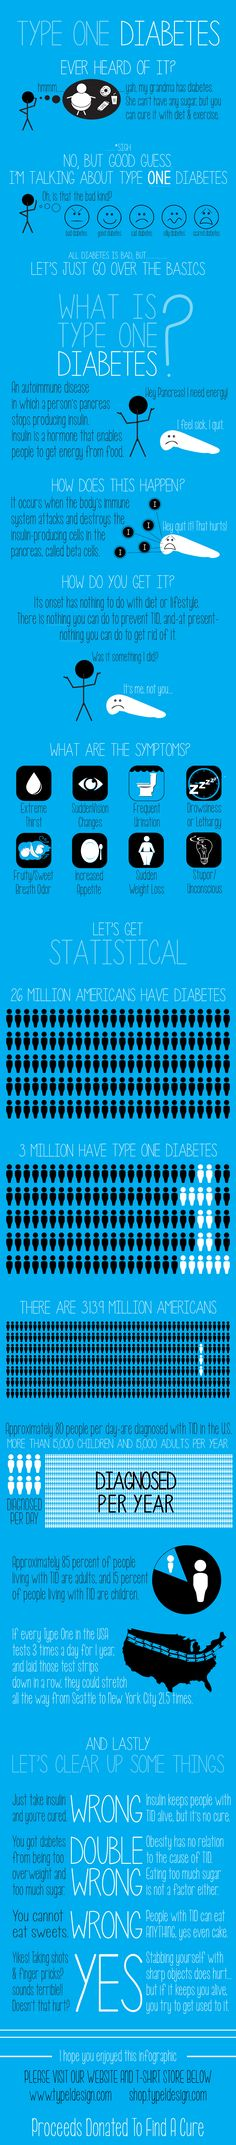 Type 1 Diabetes Infographic